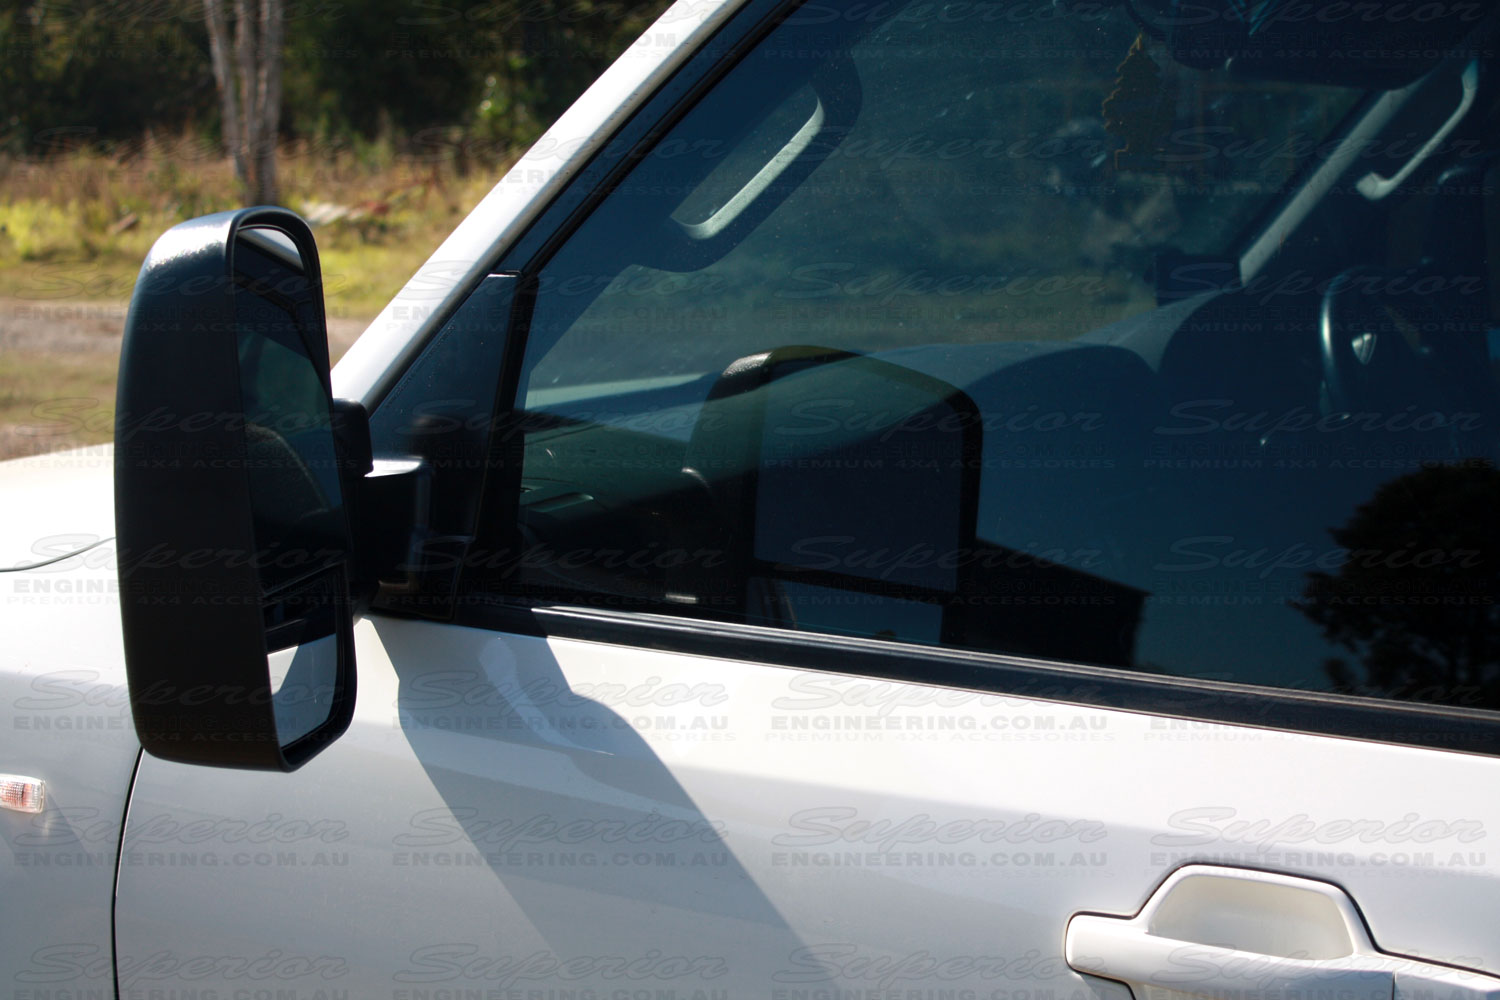 Closeup view of mirror side of a Clearview Towing Mirror fitted to a late model Pajero